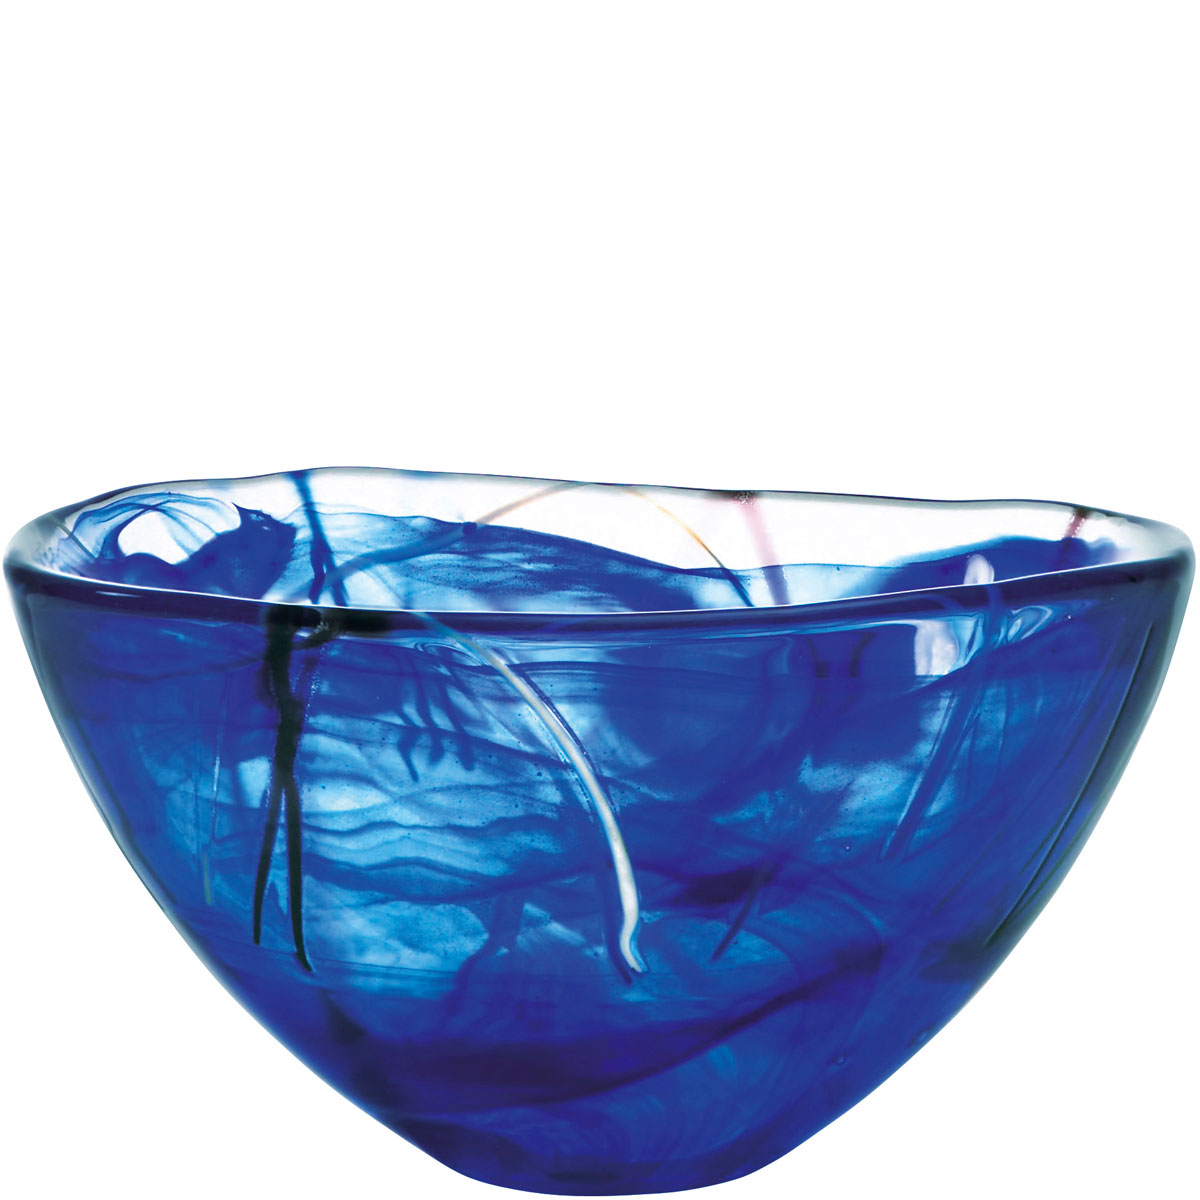 Kosta Boda Contrast Medium Crystal Bowl, Blue